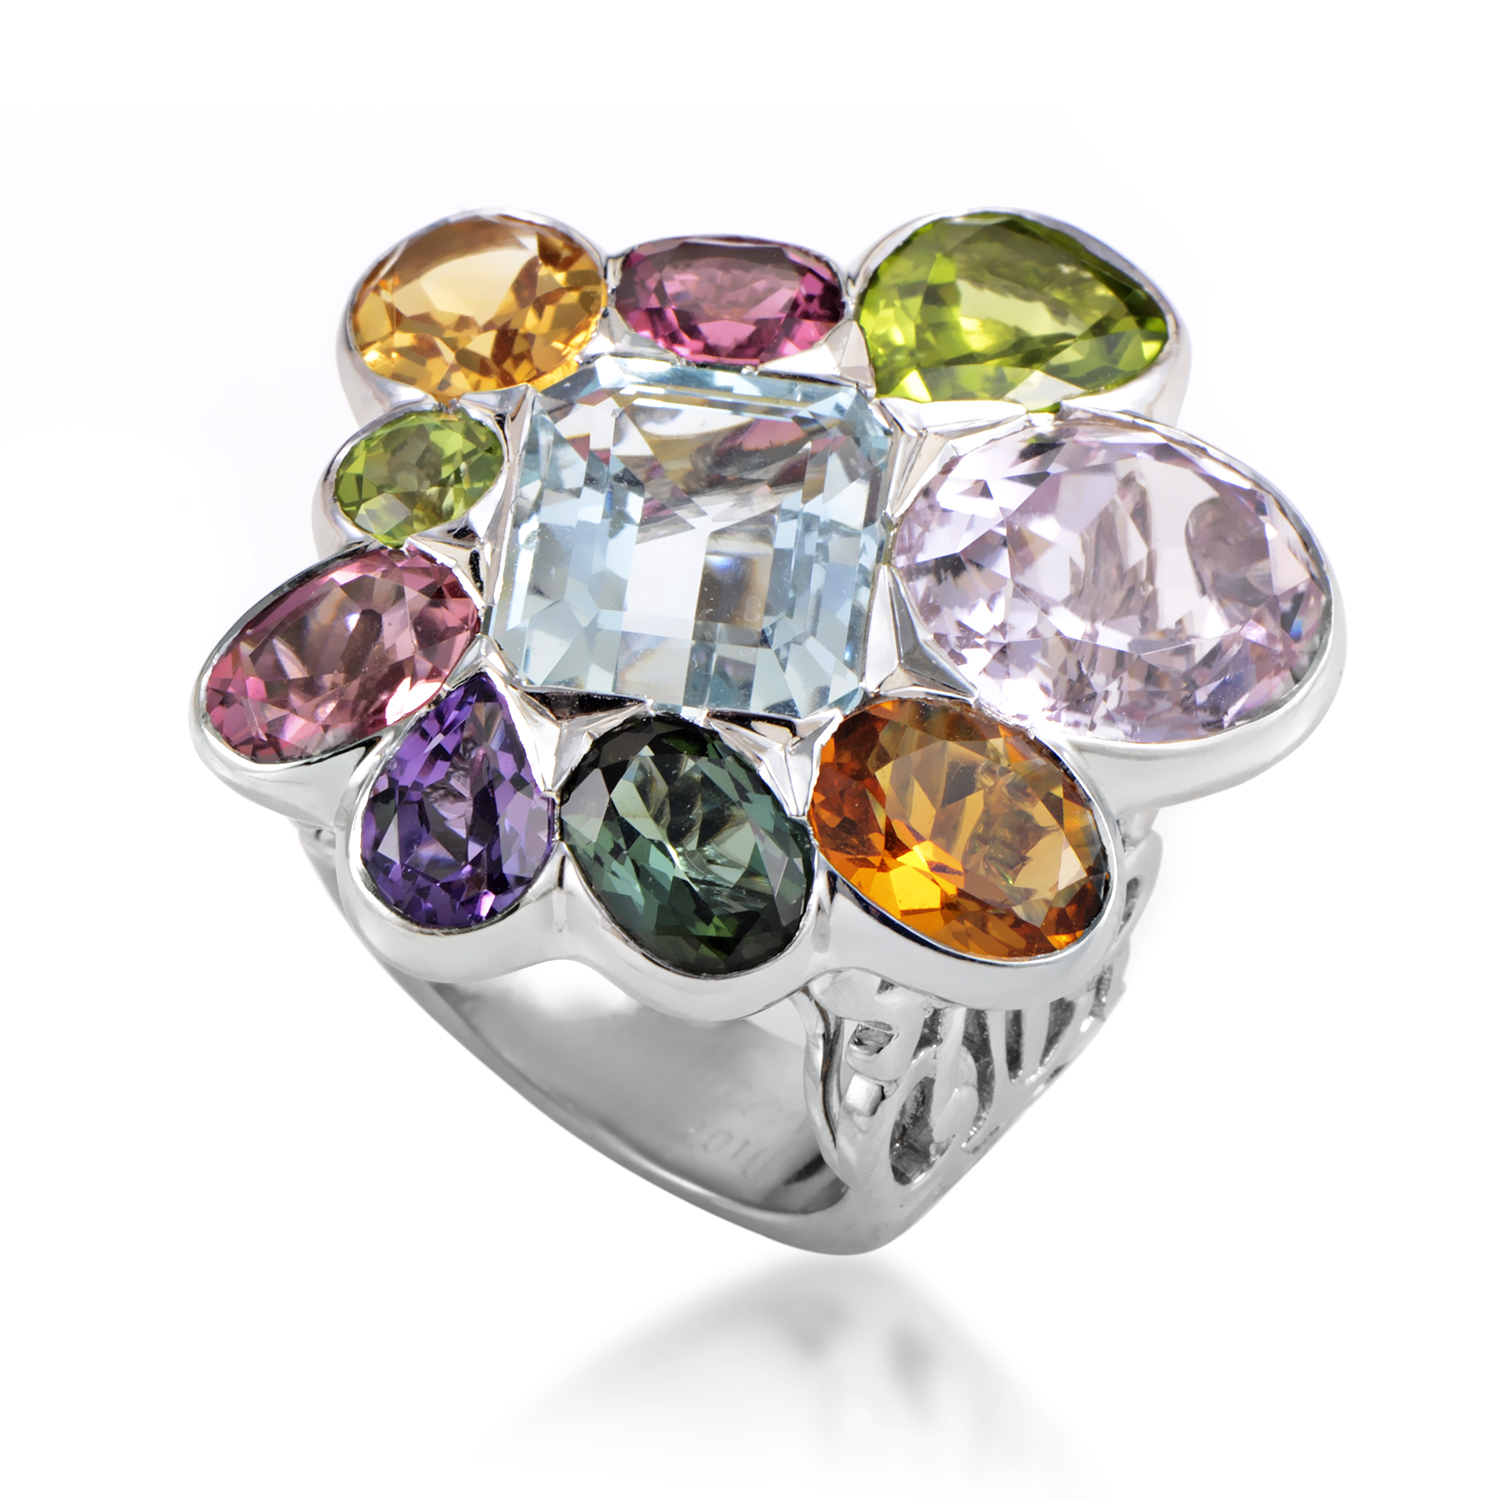 Dior Women's 18K White Gold Multi-Gemstone Cocktail Ring